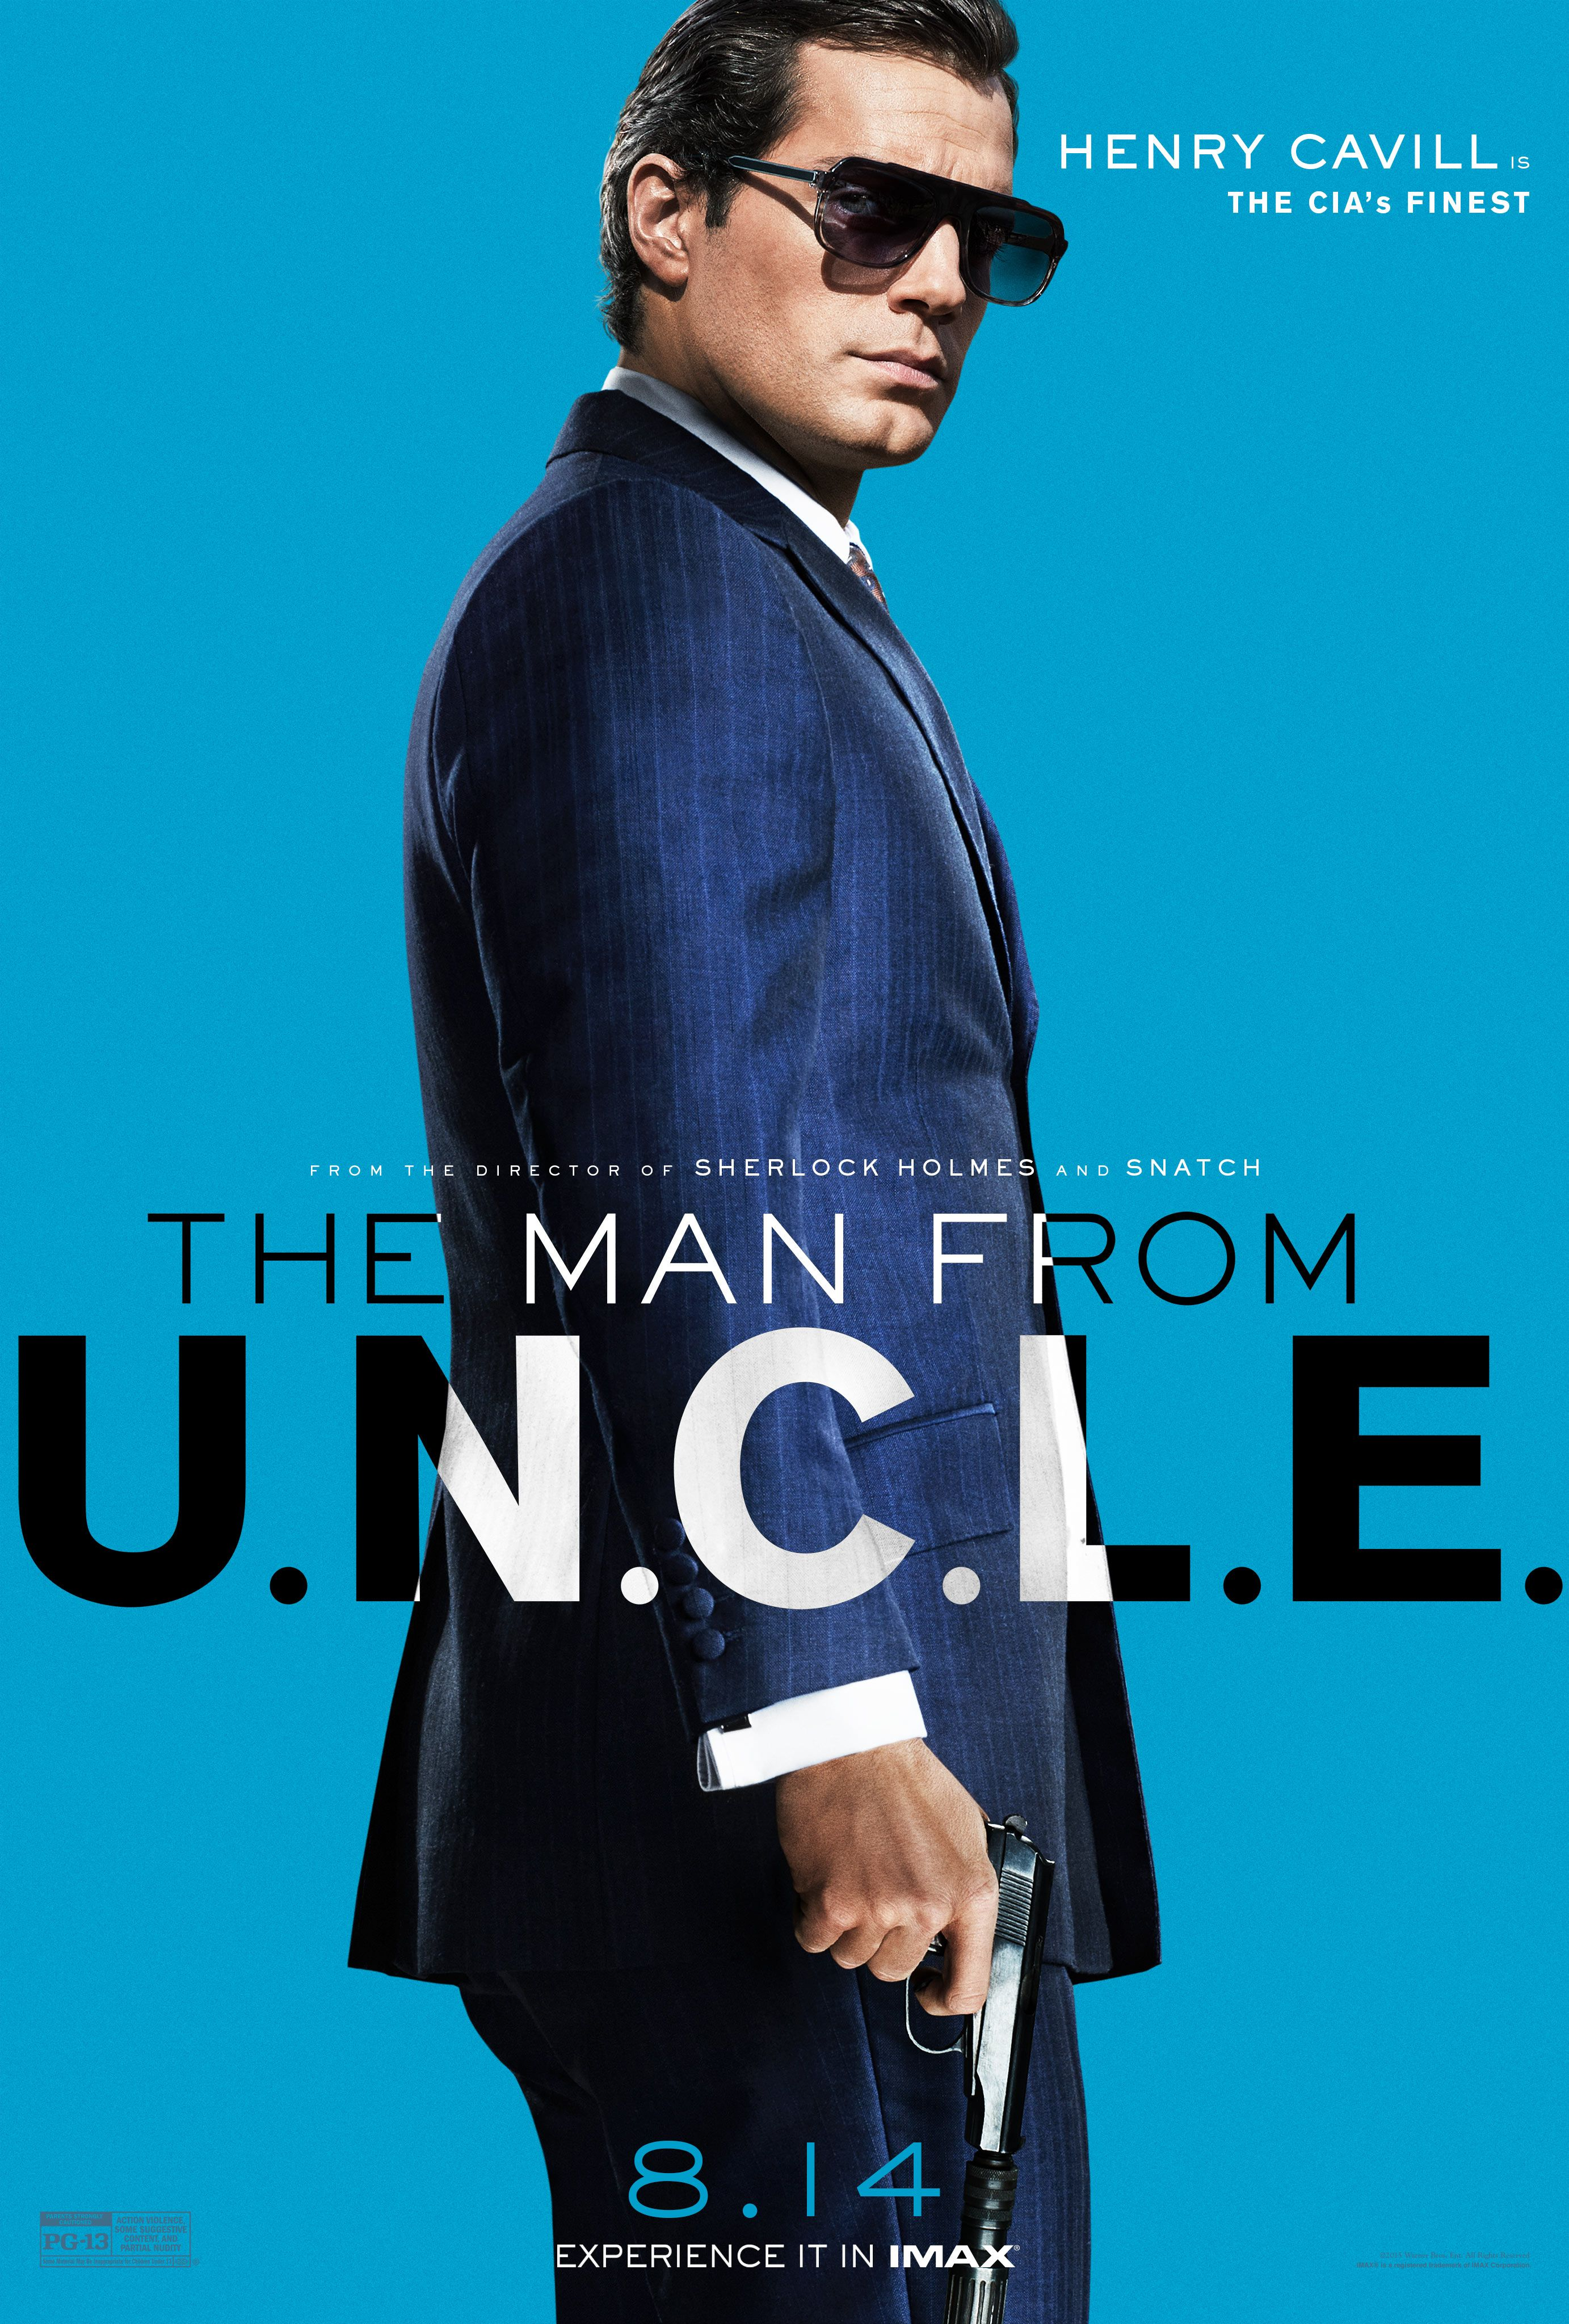 From Master Criminal To Cia Mastermind Henry Cavill Stars As